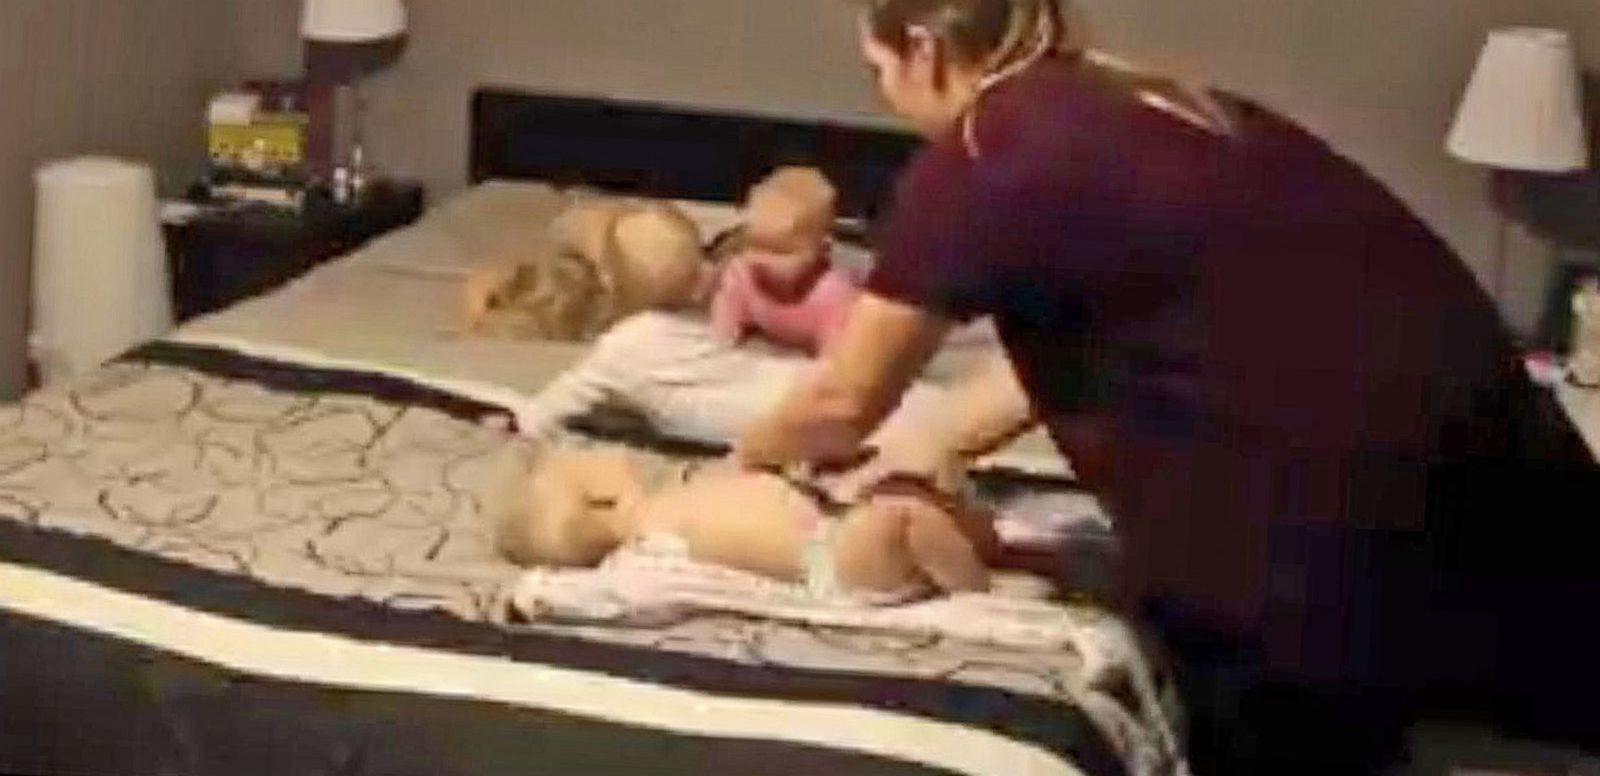 VIDEO: Super Mom Getting Her Four Toddlers Ready for Bed Goes Super Viral